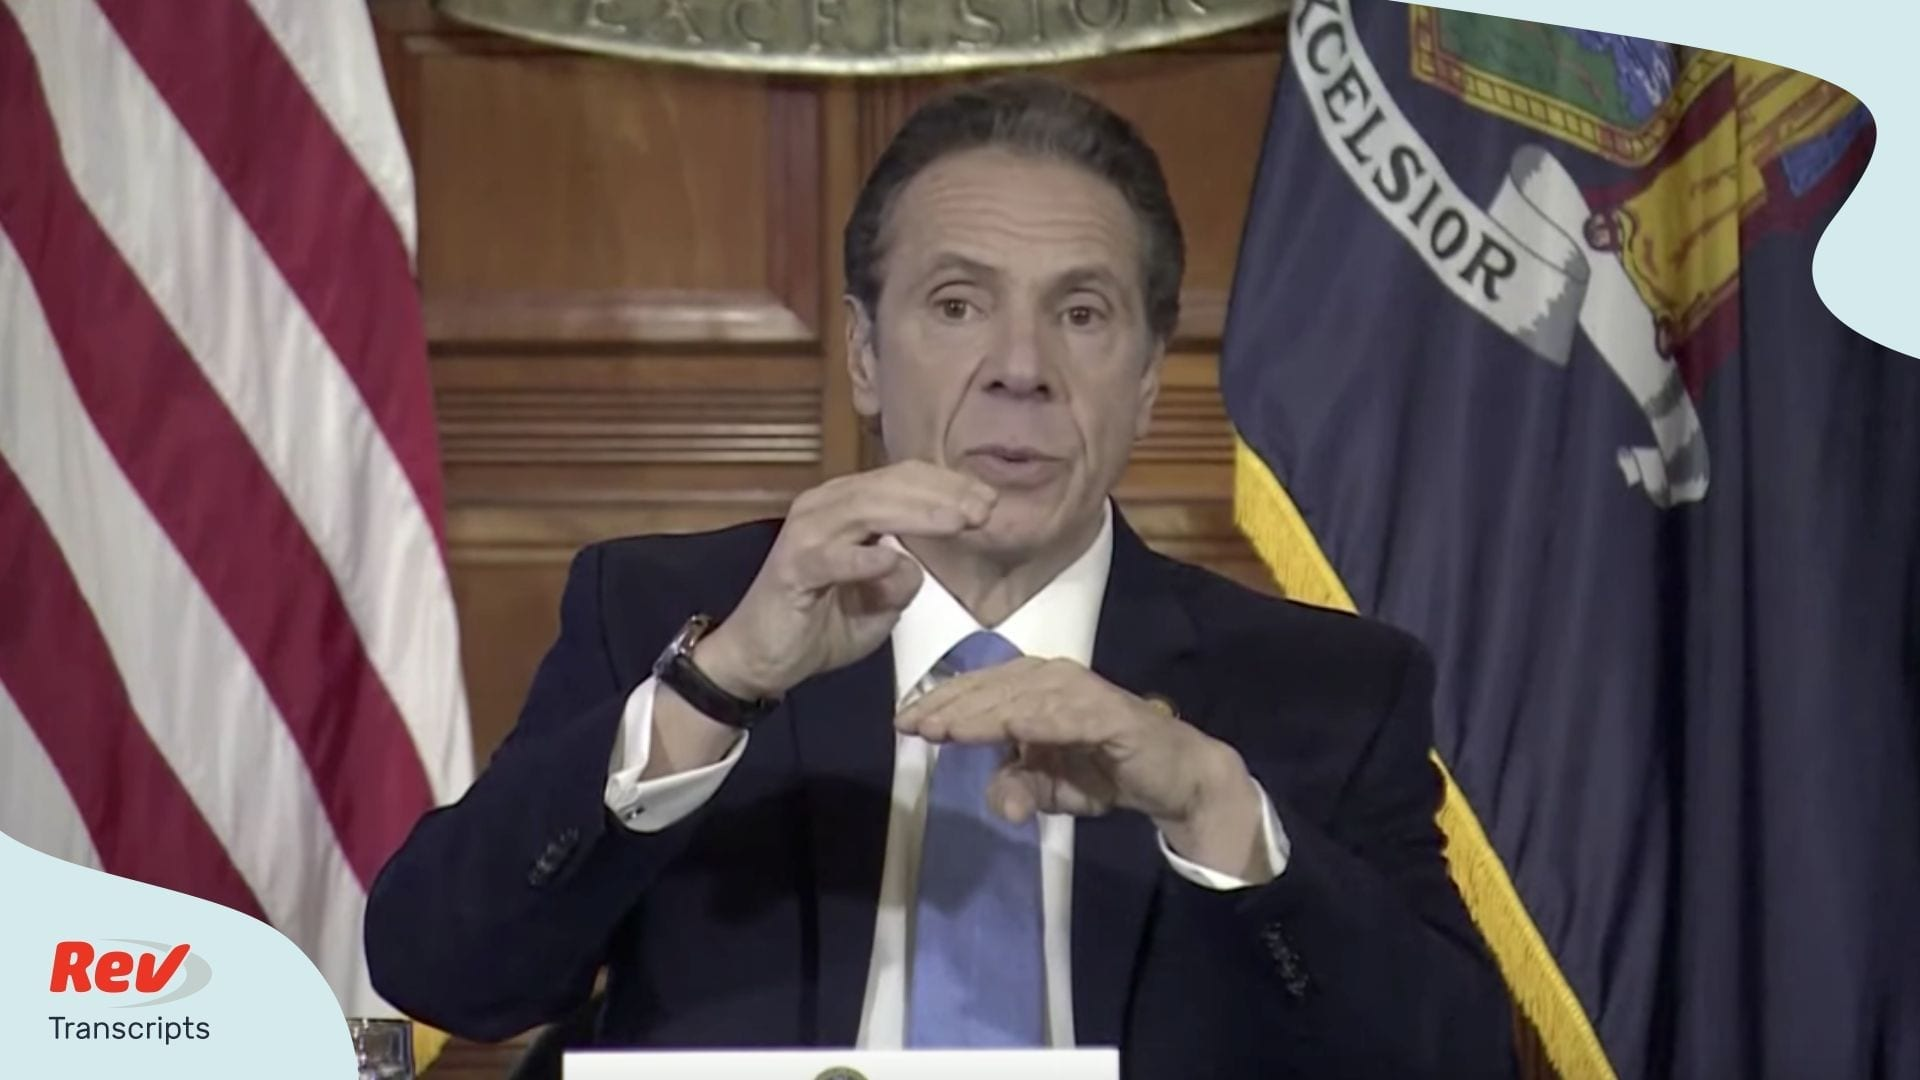 Governor Andrew Cuomo Coronavirus New York Update March 16